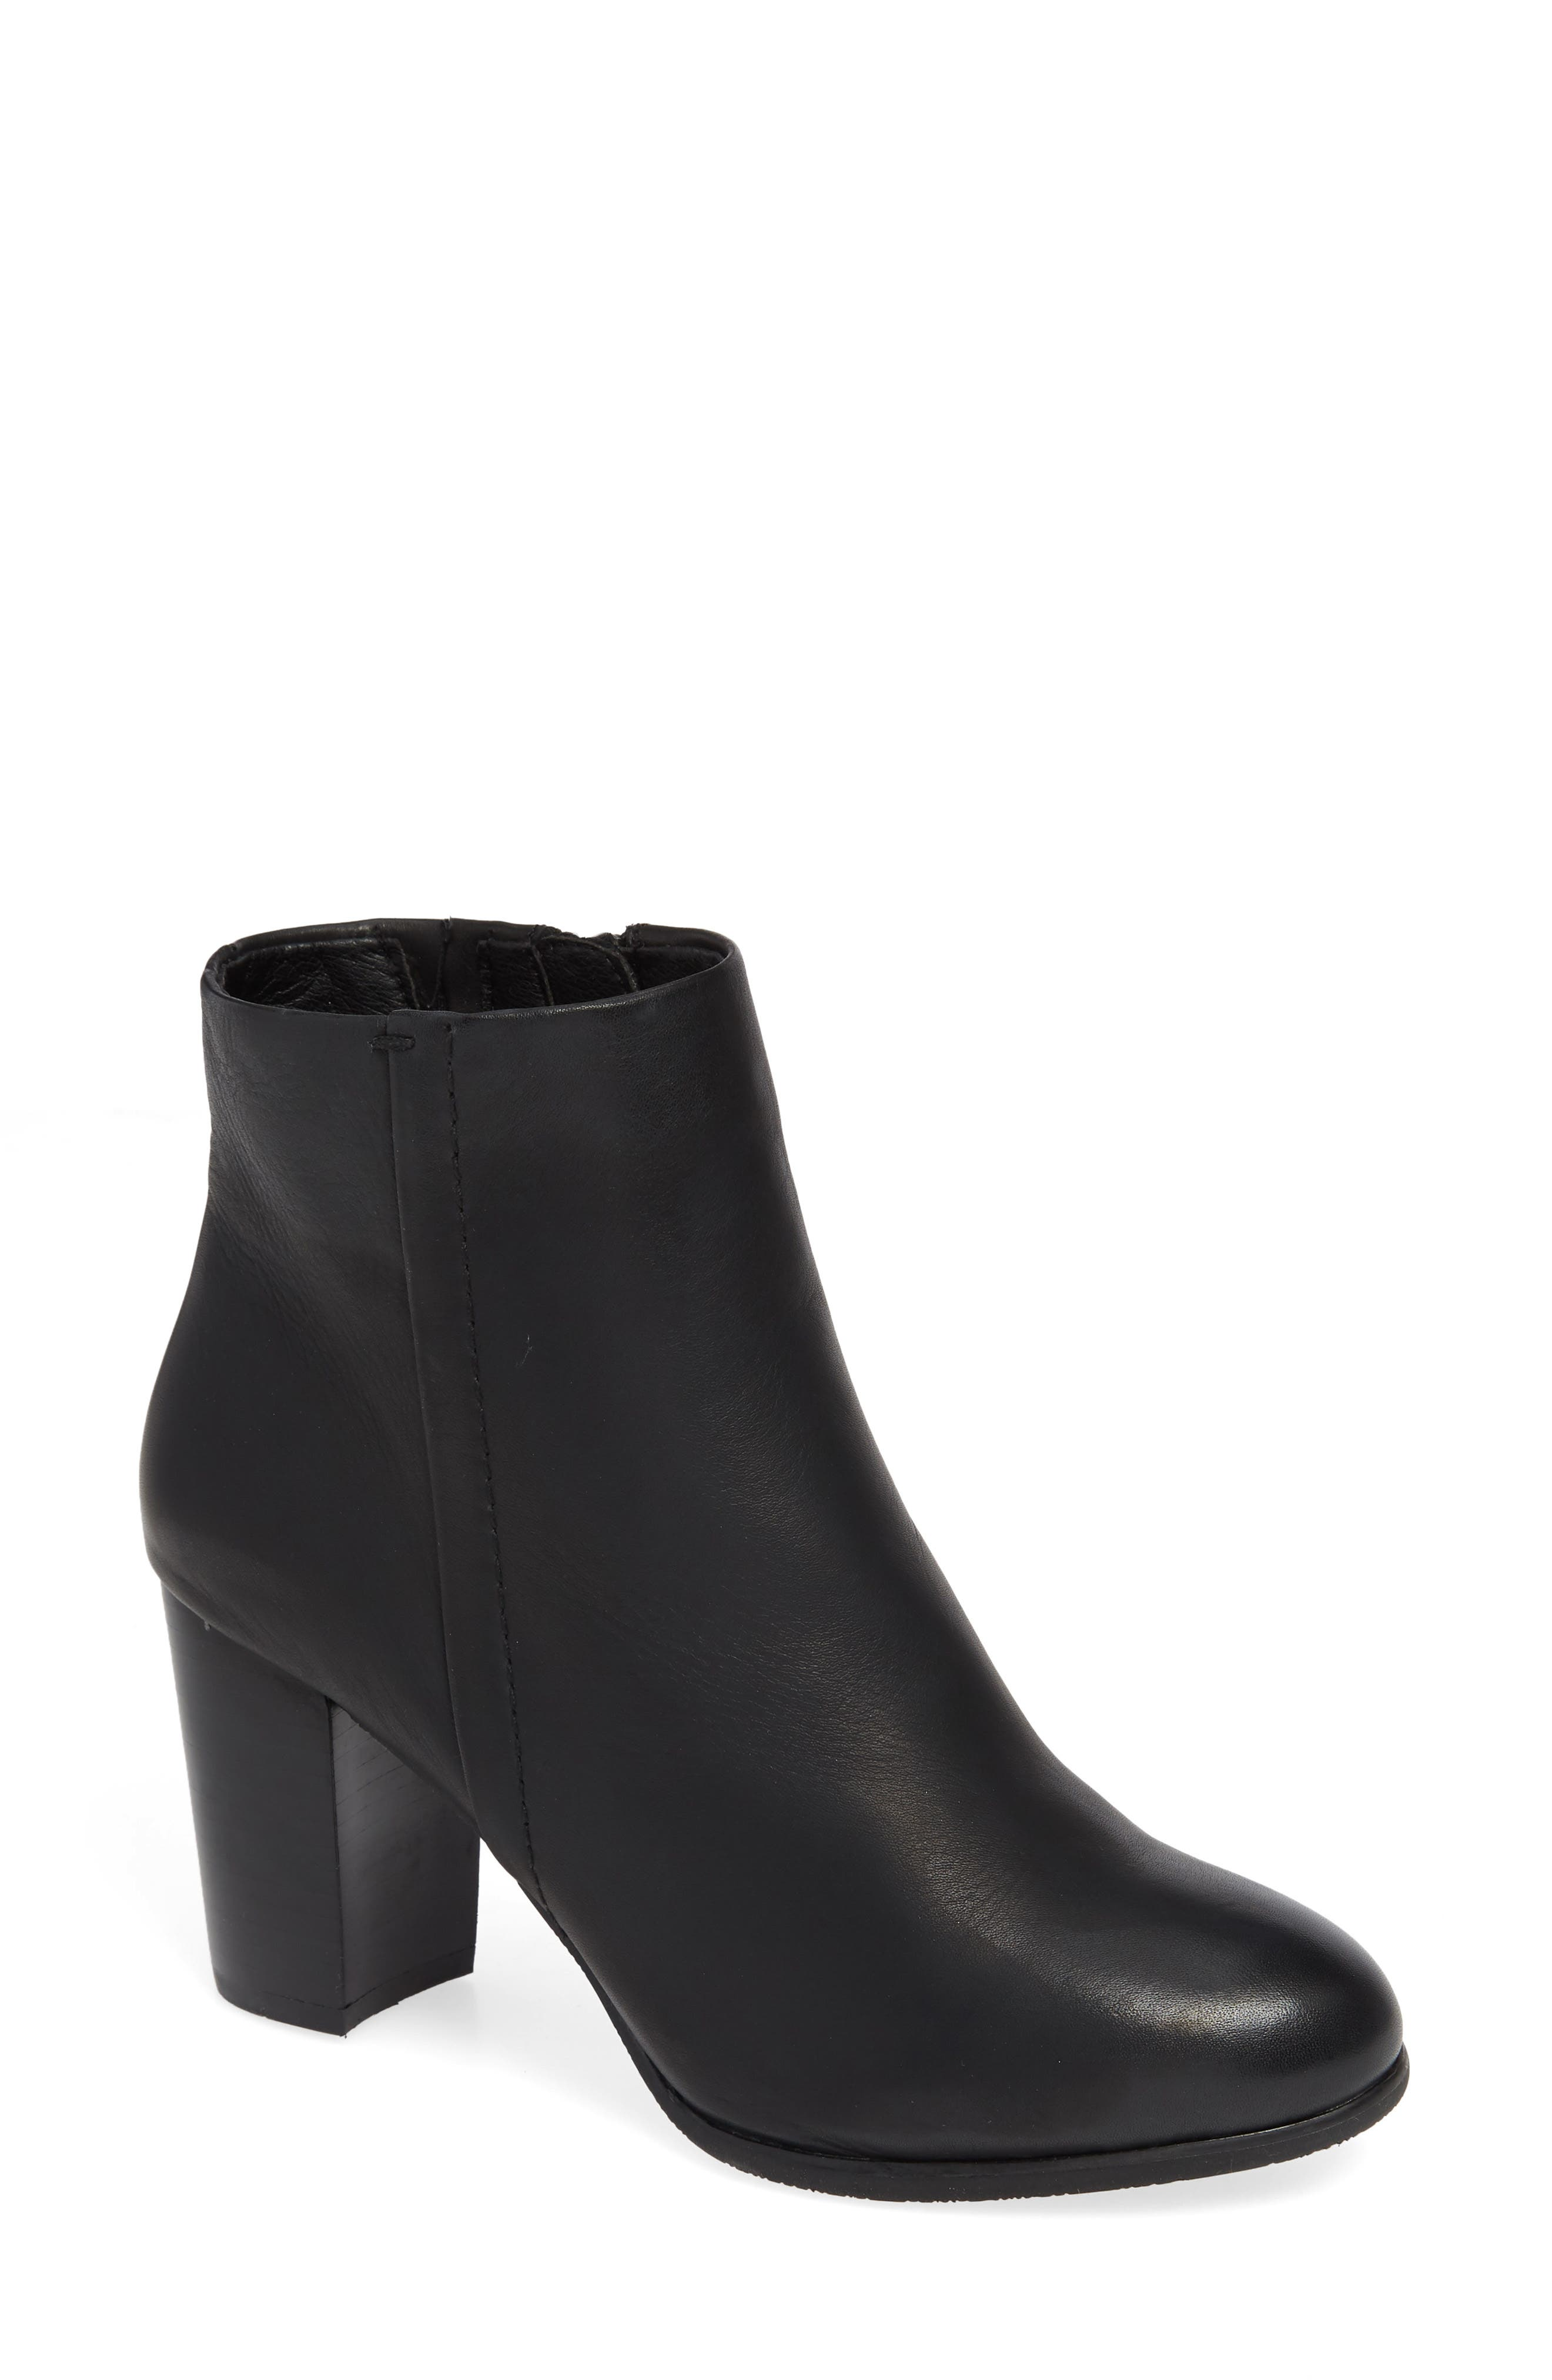 Kennedy Ankle Bootie,                             Main thumbnail 1, color,                             BLACK LEATHER